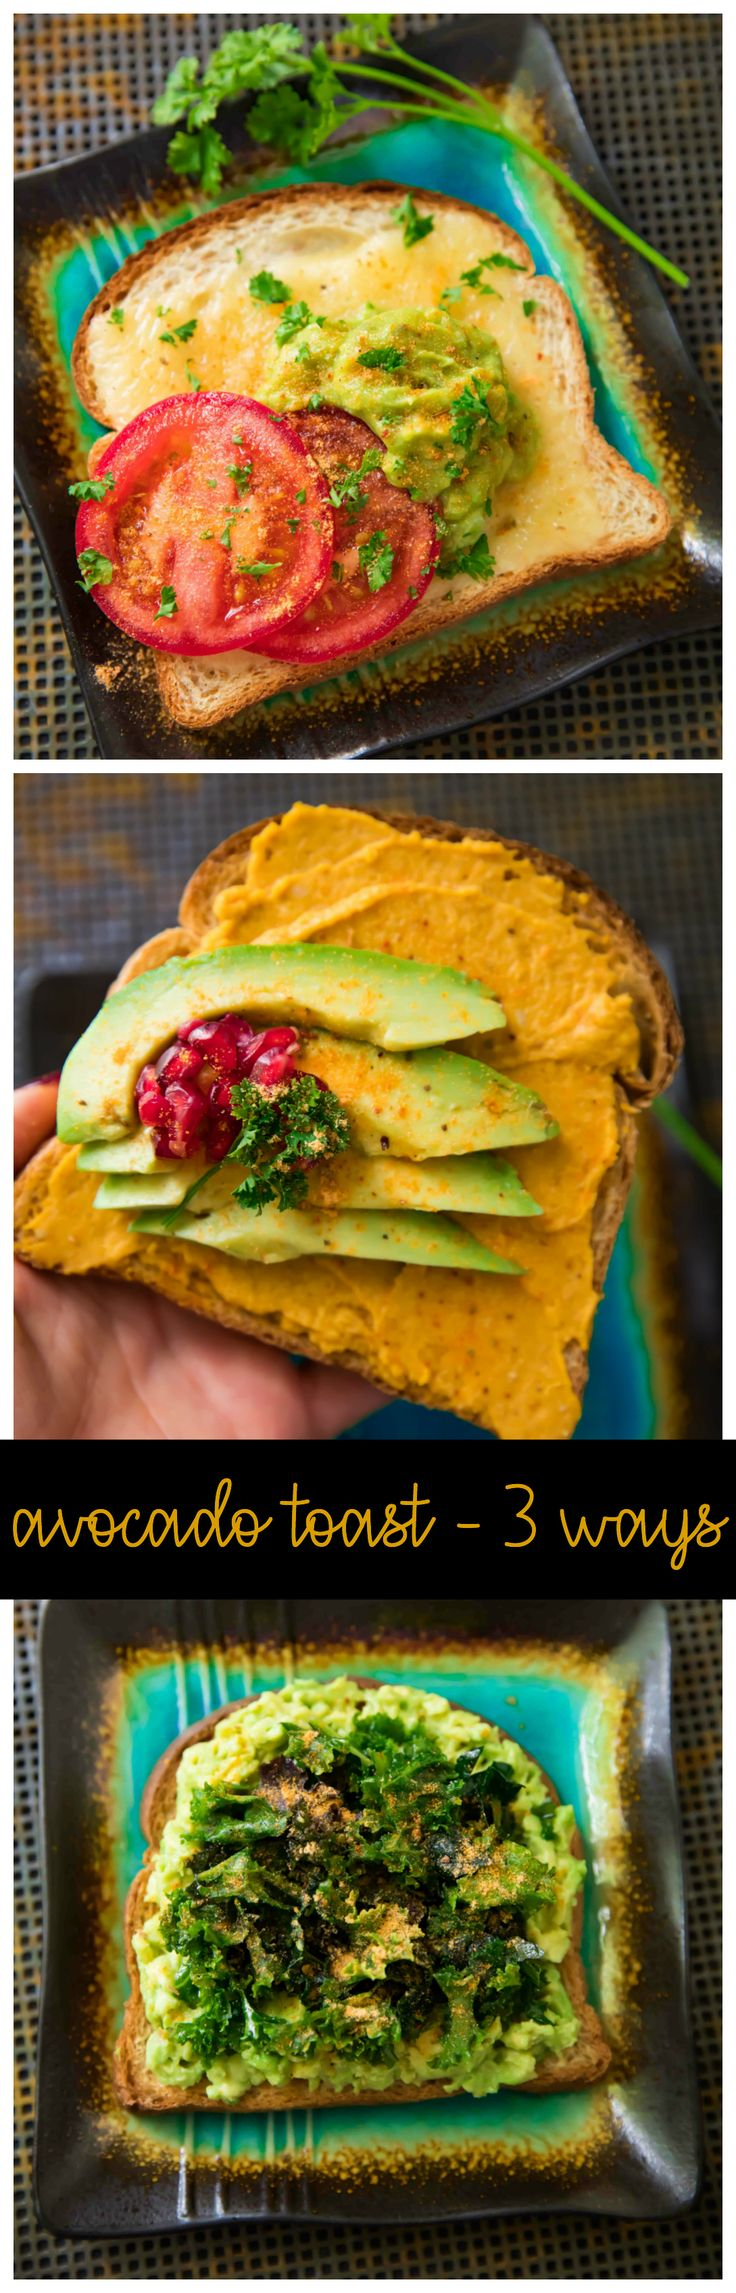 Looking for the quickest, most delicious and easiest breakfast or snack? These ideas for Avocado Toast Three Ways are exactly that! #AD #LeaveBlandBehind